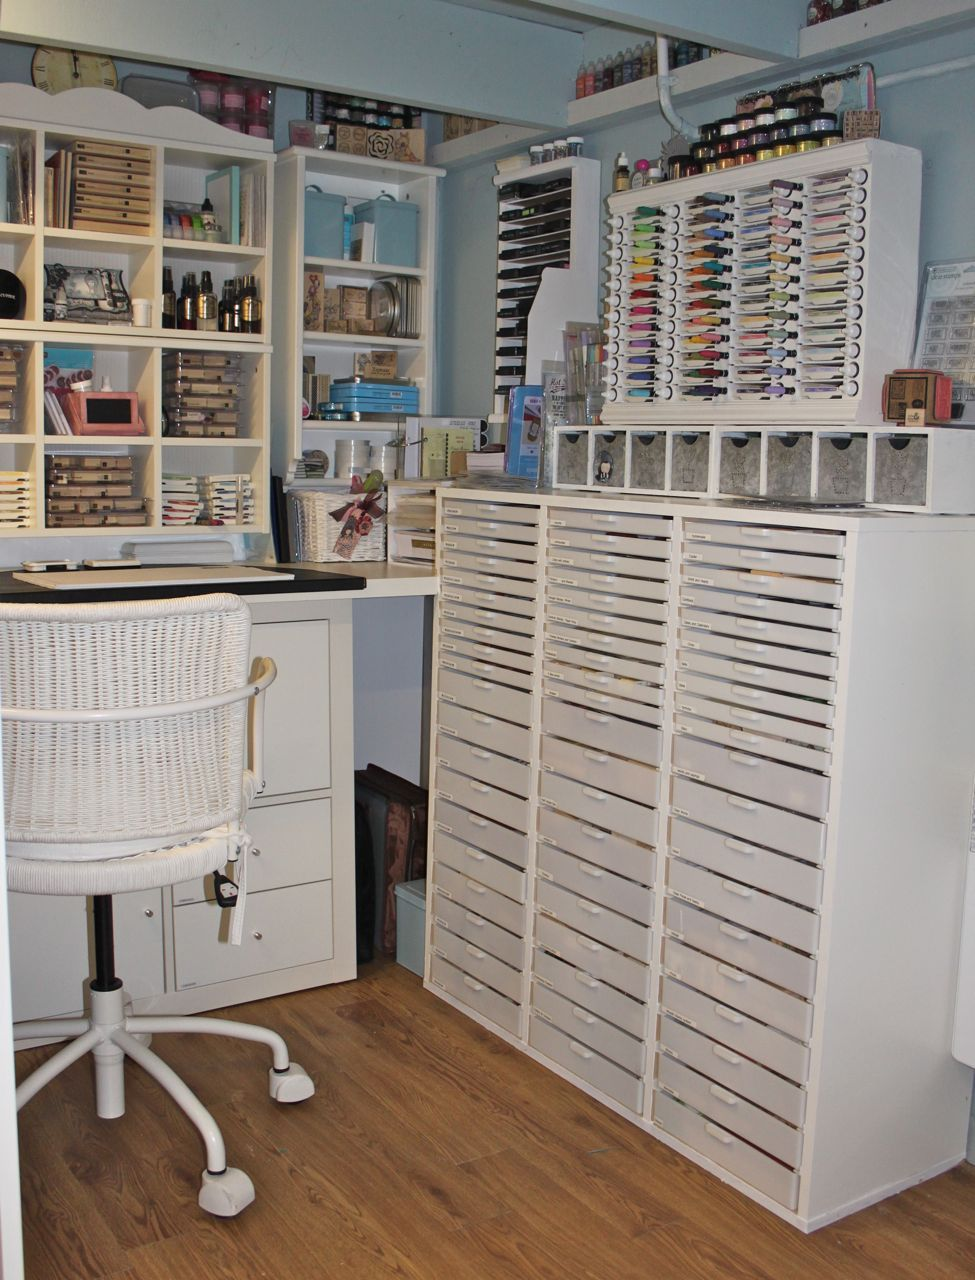 Craft Room {Paper Papillon) -her ink storage is really amazing, someone must have built that for her? Must see her blog...I see ideas here!